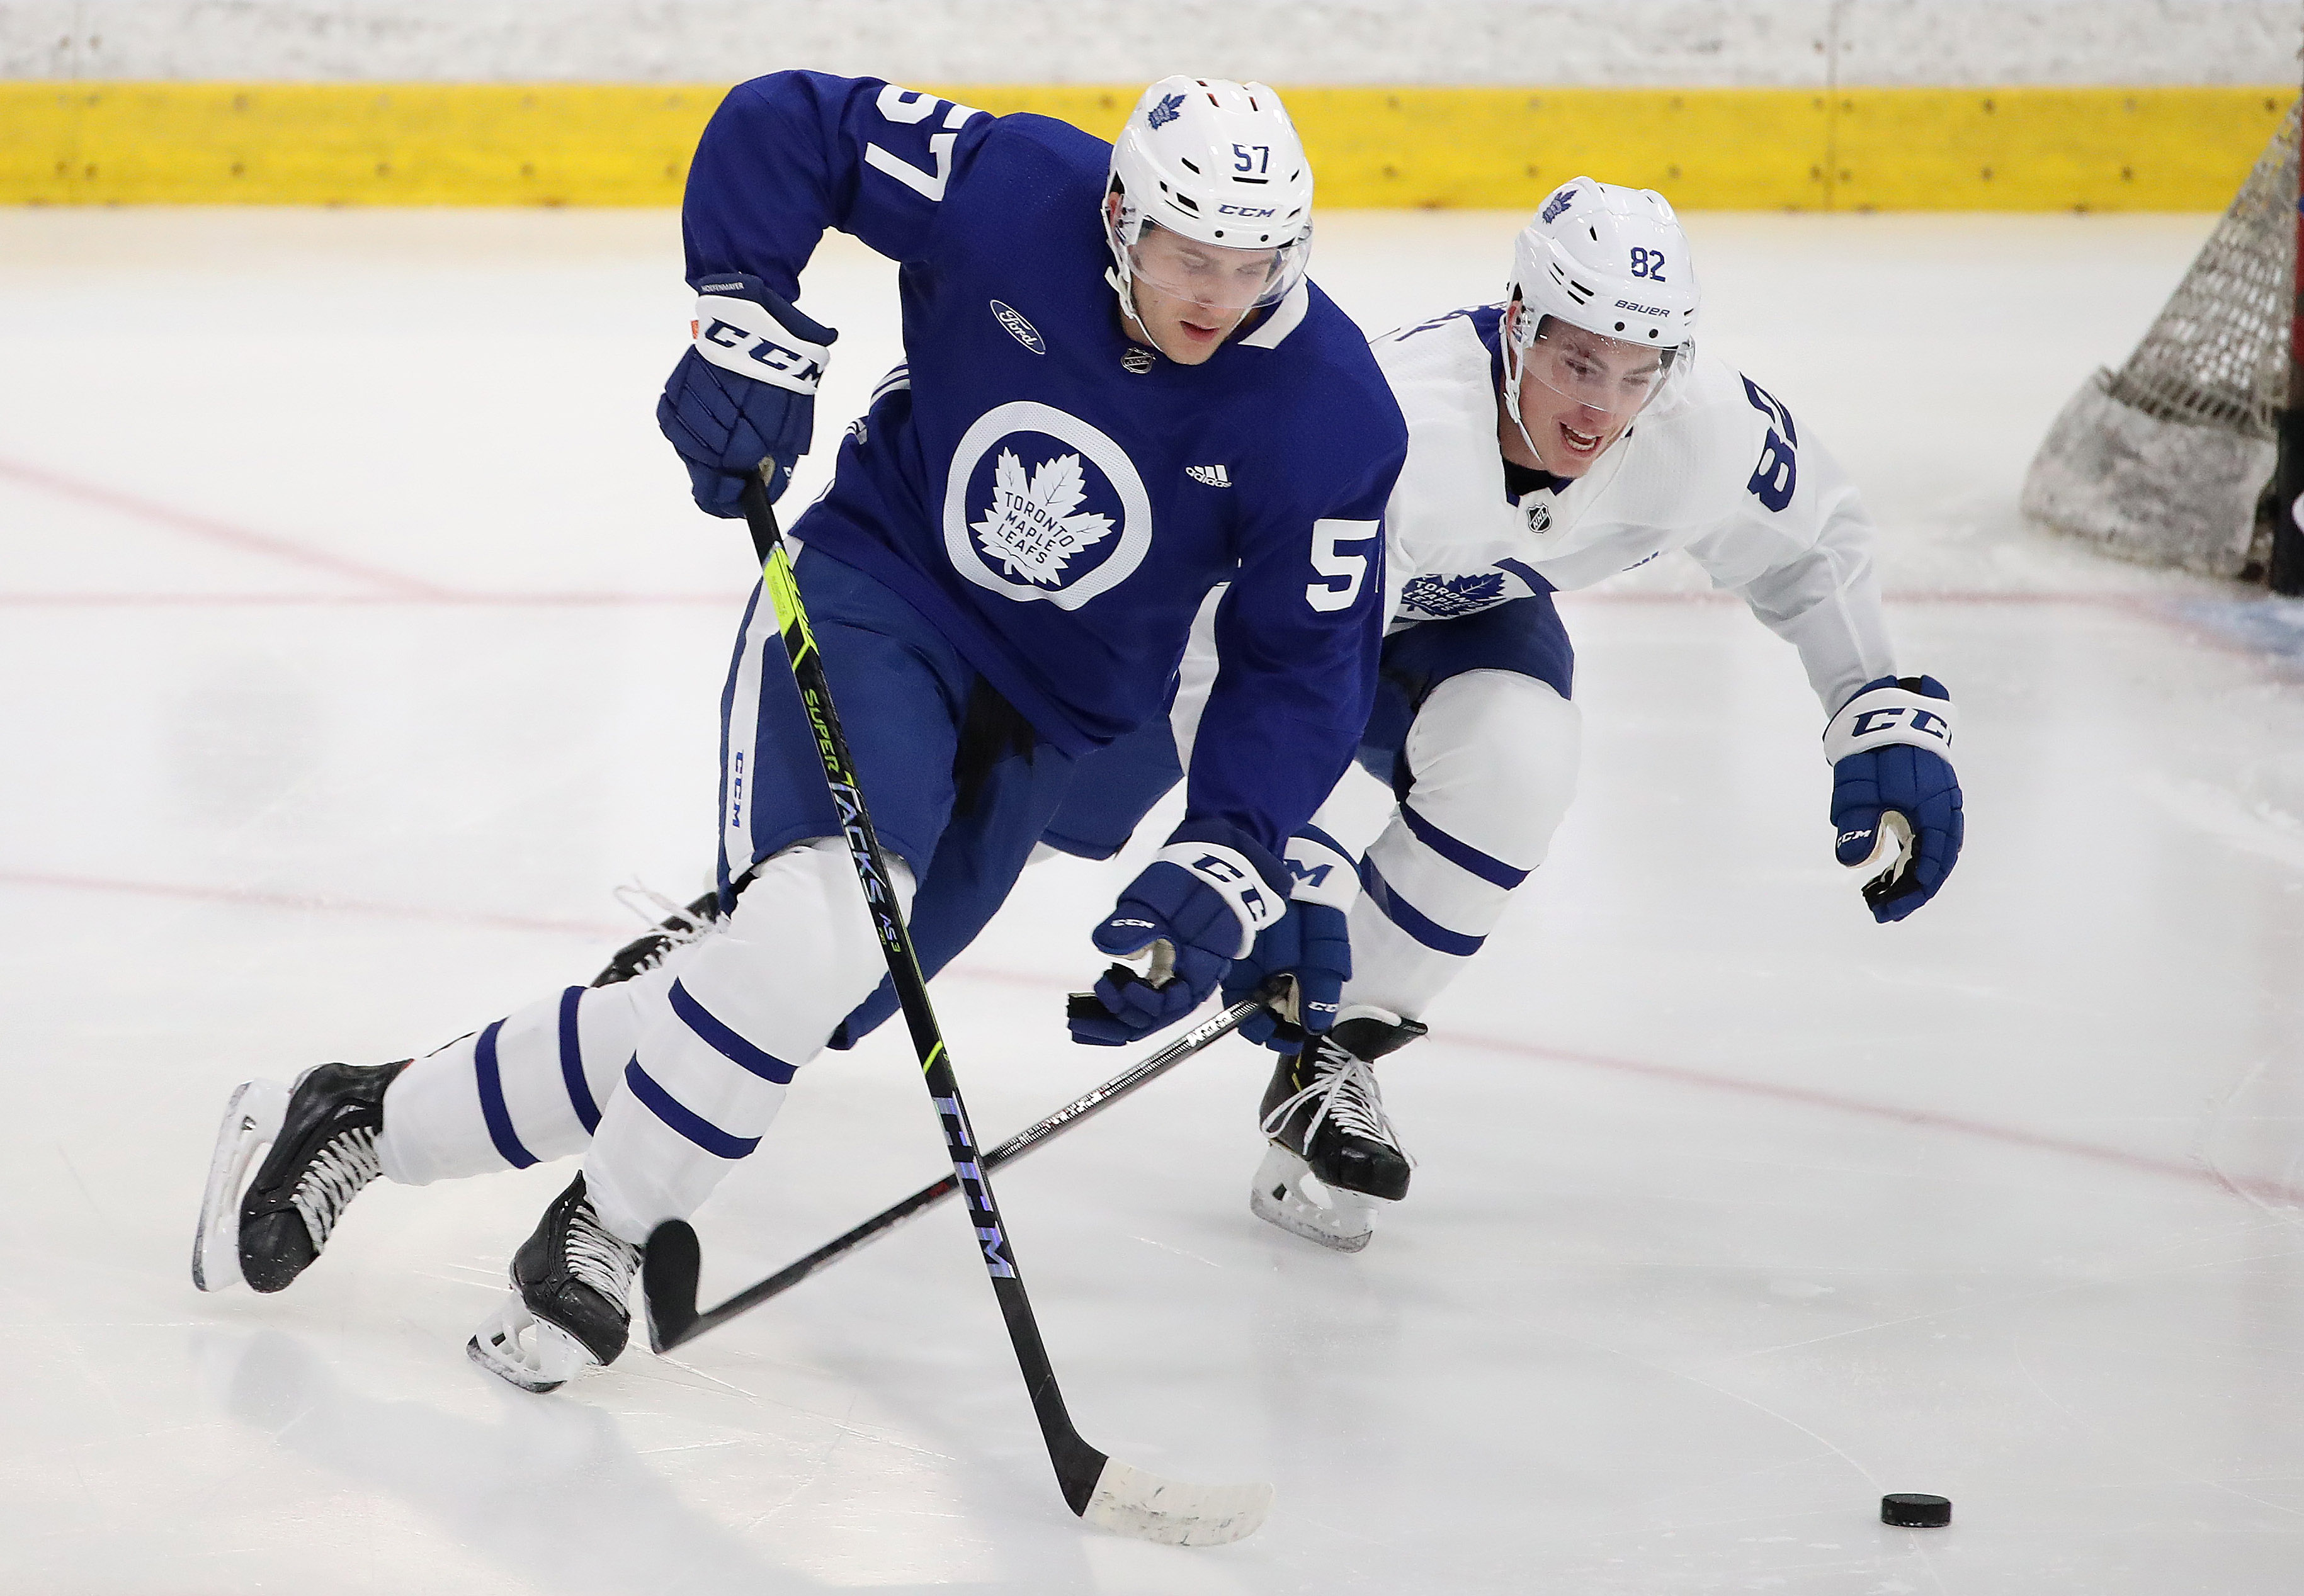 The Toronto Maple Leafs hold their development camp